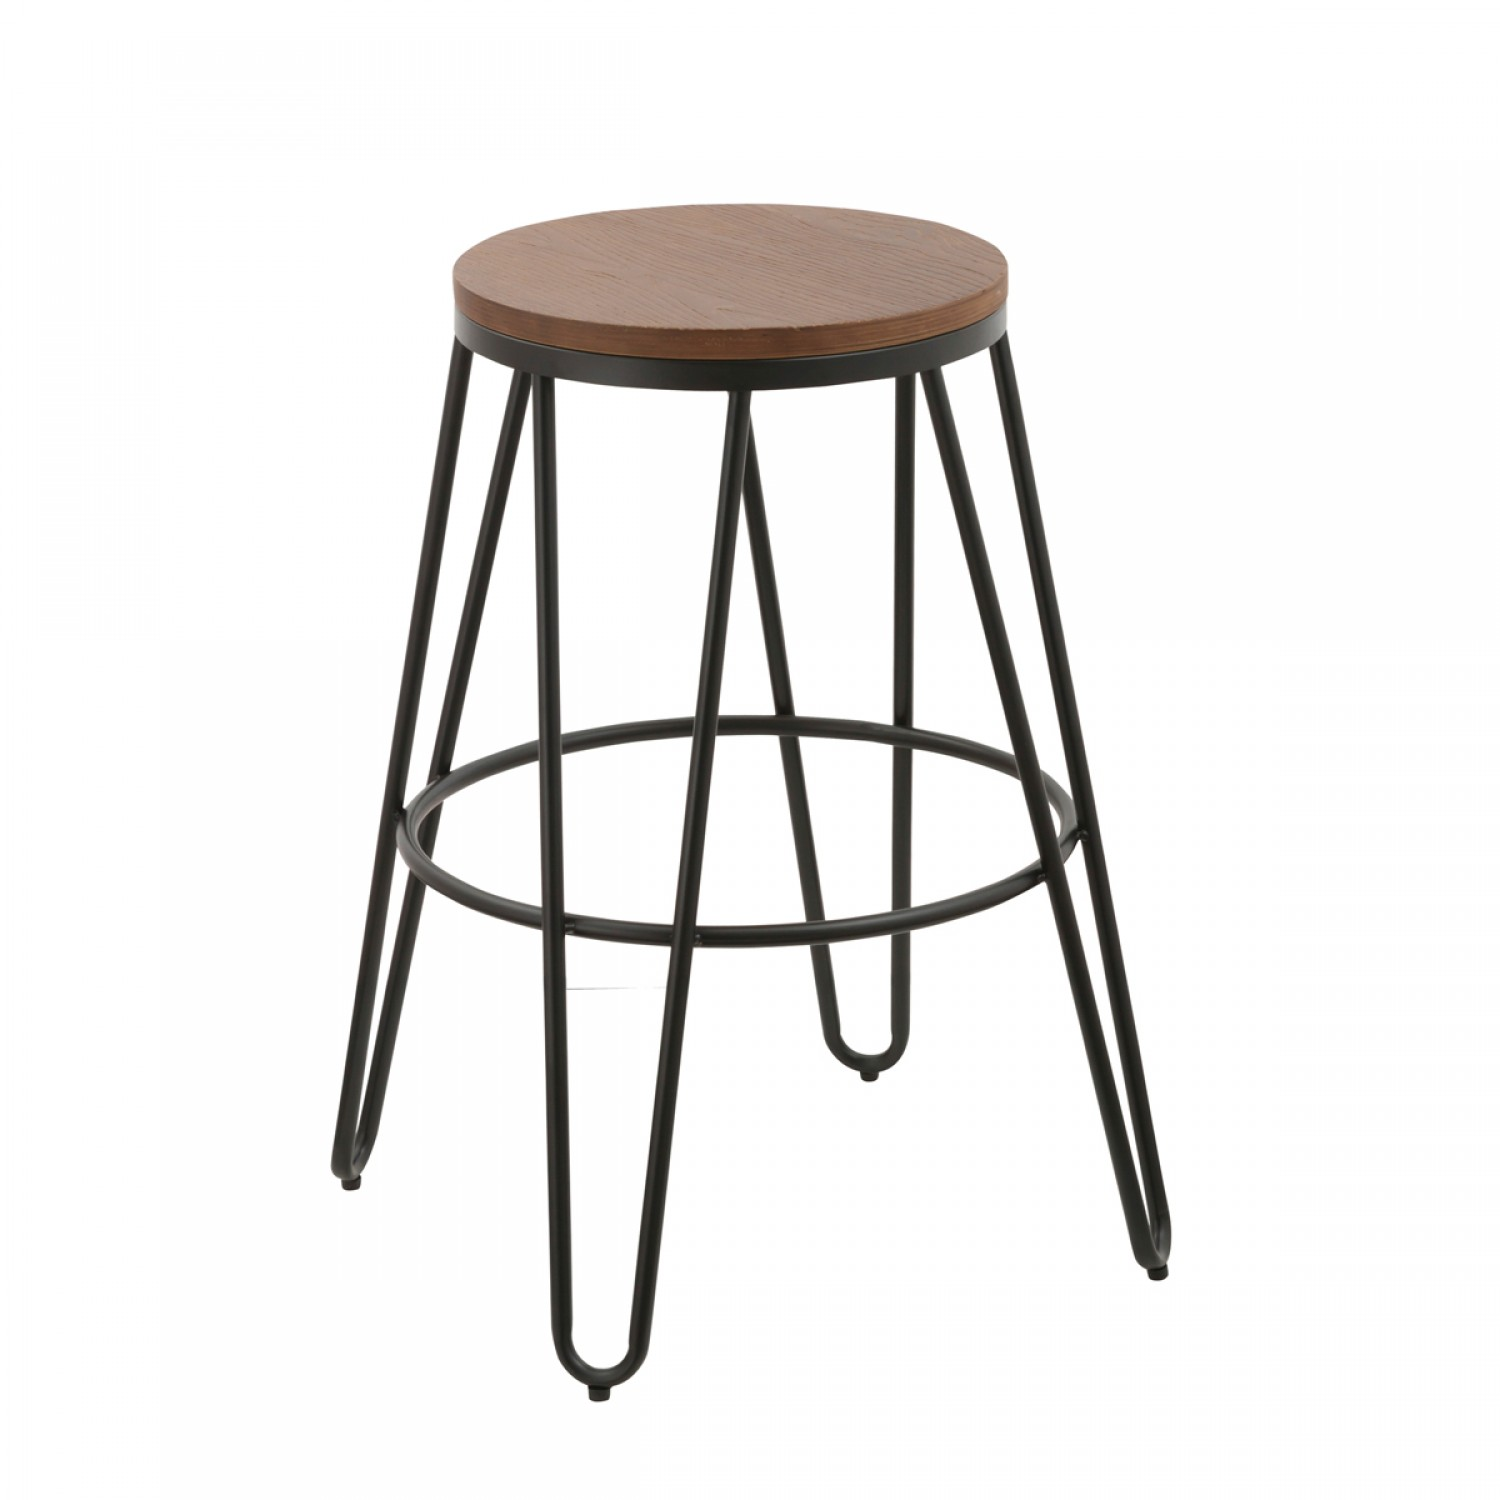 tabouret de bar bois et metal tabouret de bar design en bois et m tal tabouret de bar en m tal. Black Bedroom Furniture Sets. Home Design Ideas